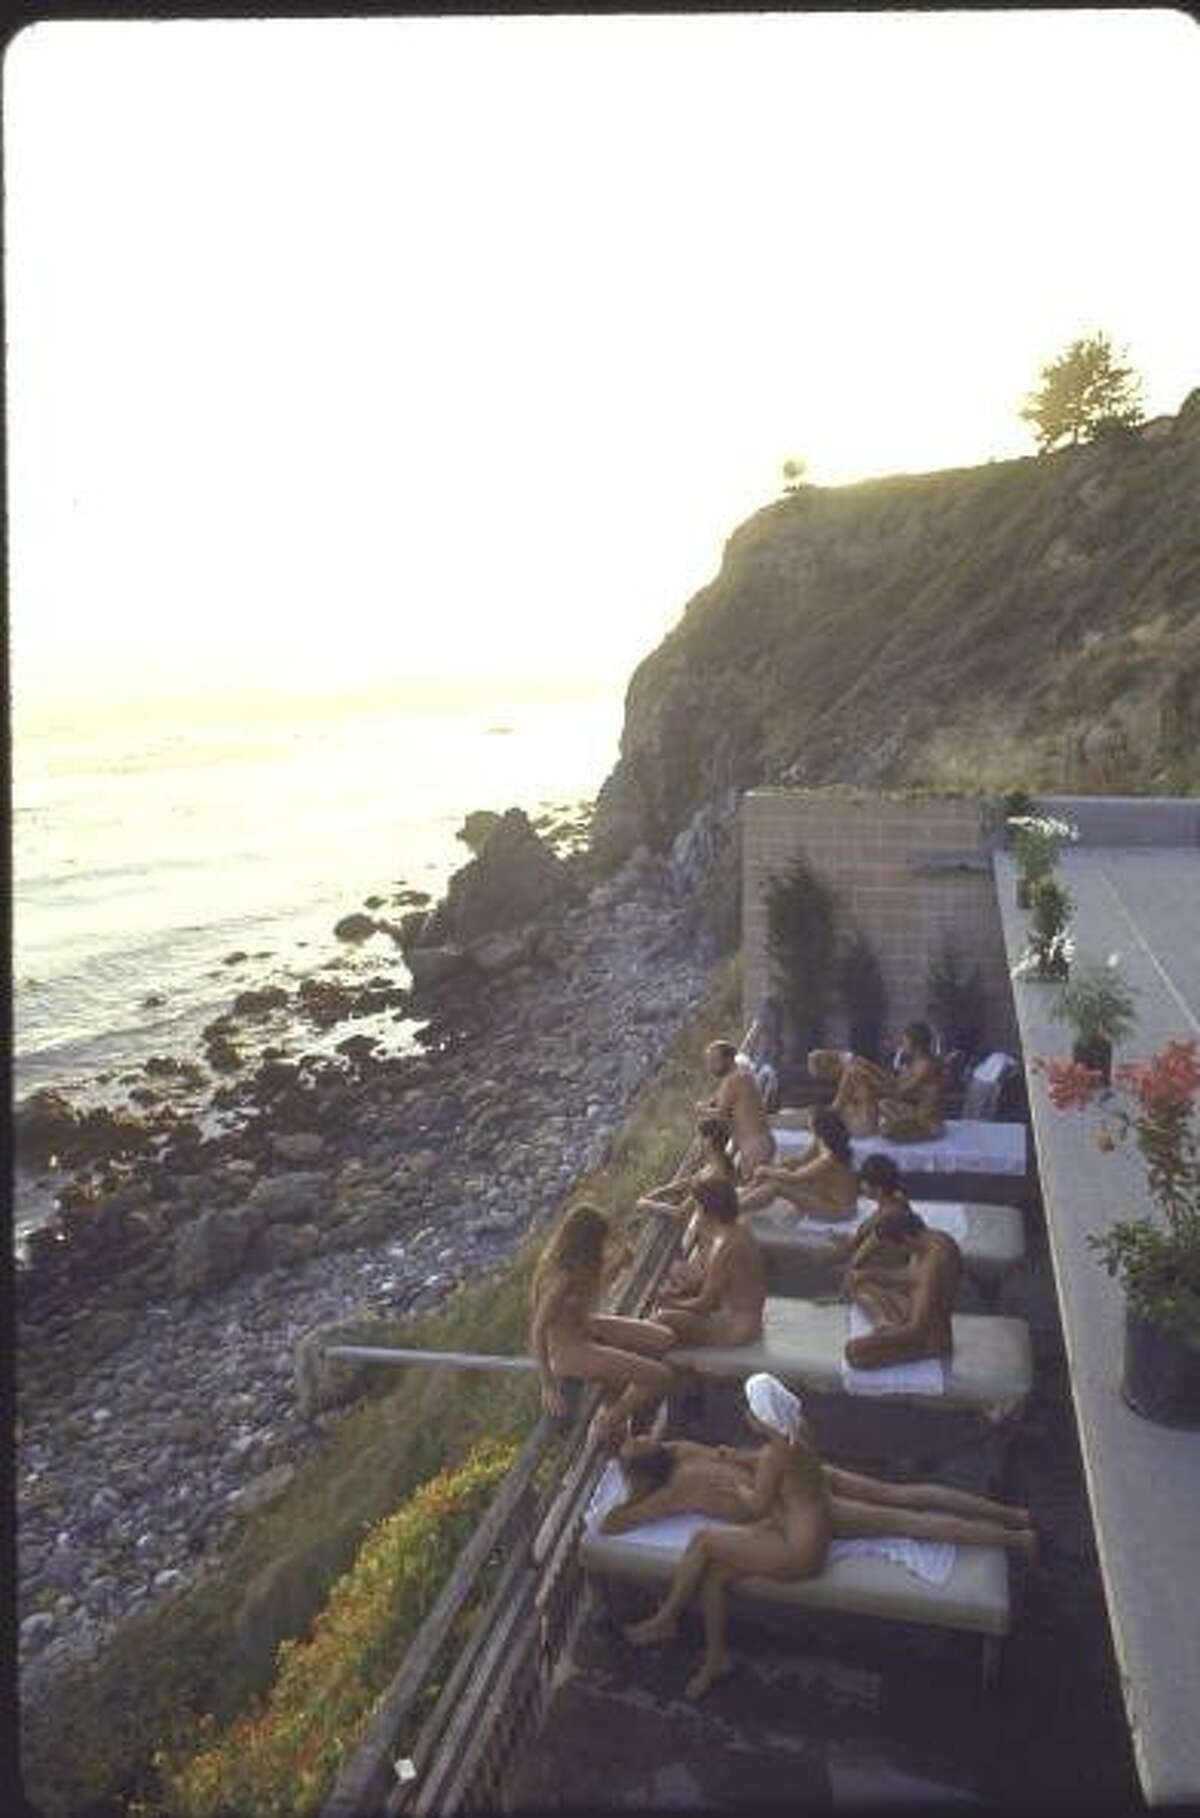 Nude couples on a balcony Jan. 1, 1970, at the Esalen Institute in Big Sur, Calif., a place for yoga, meditation, bongo drums and other staples of the hippie philosophy.